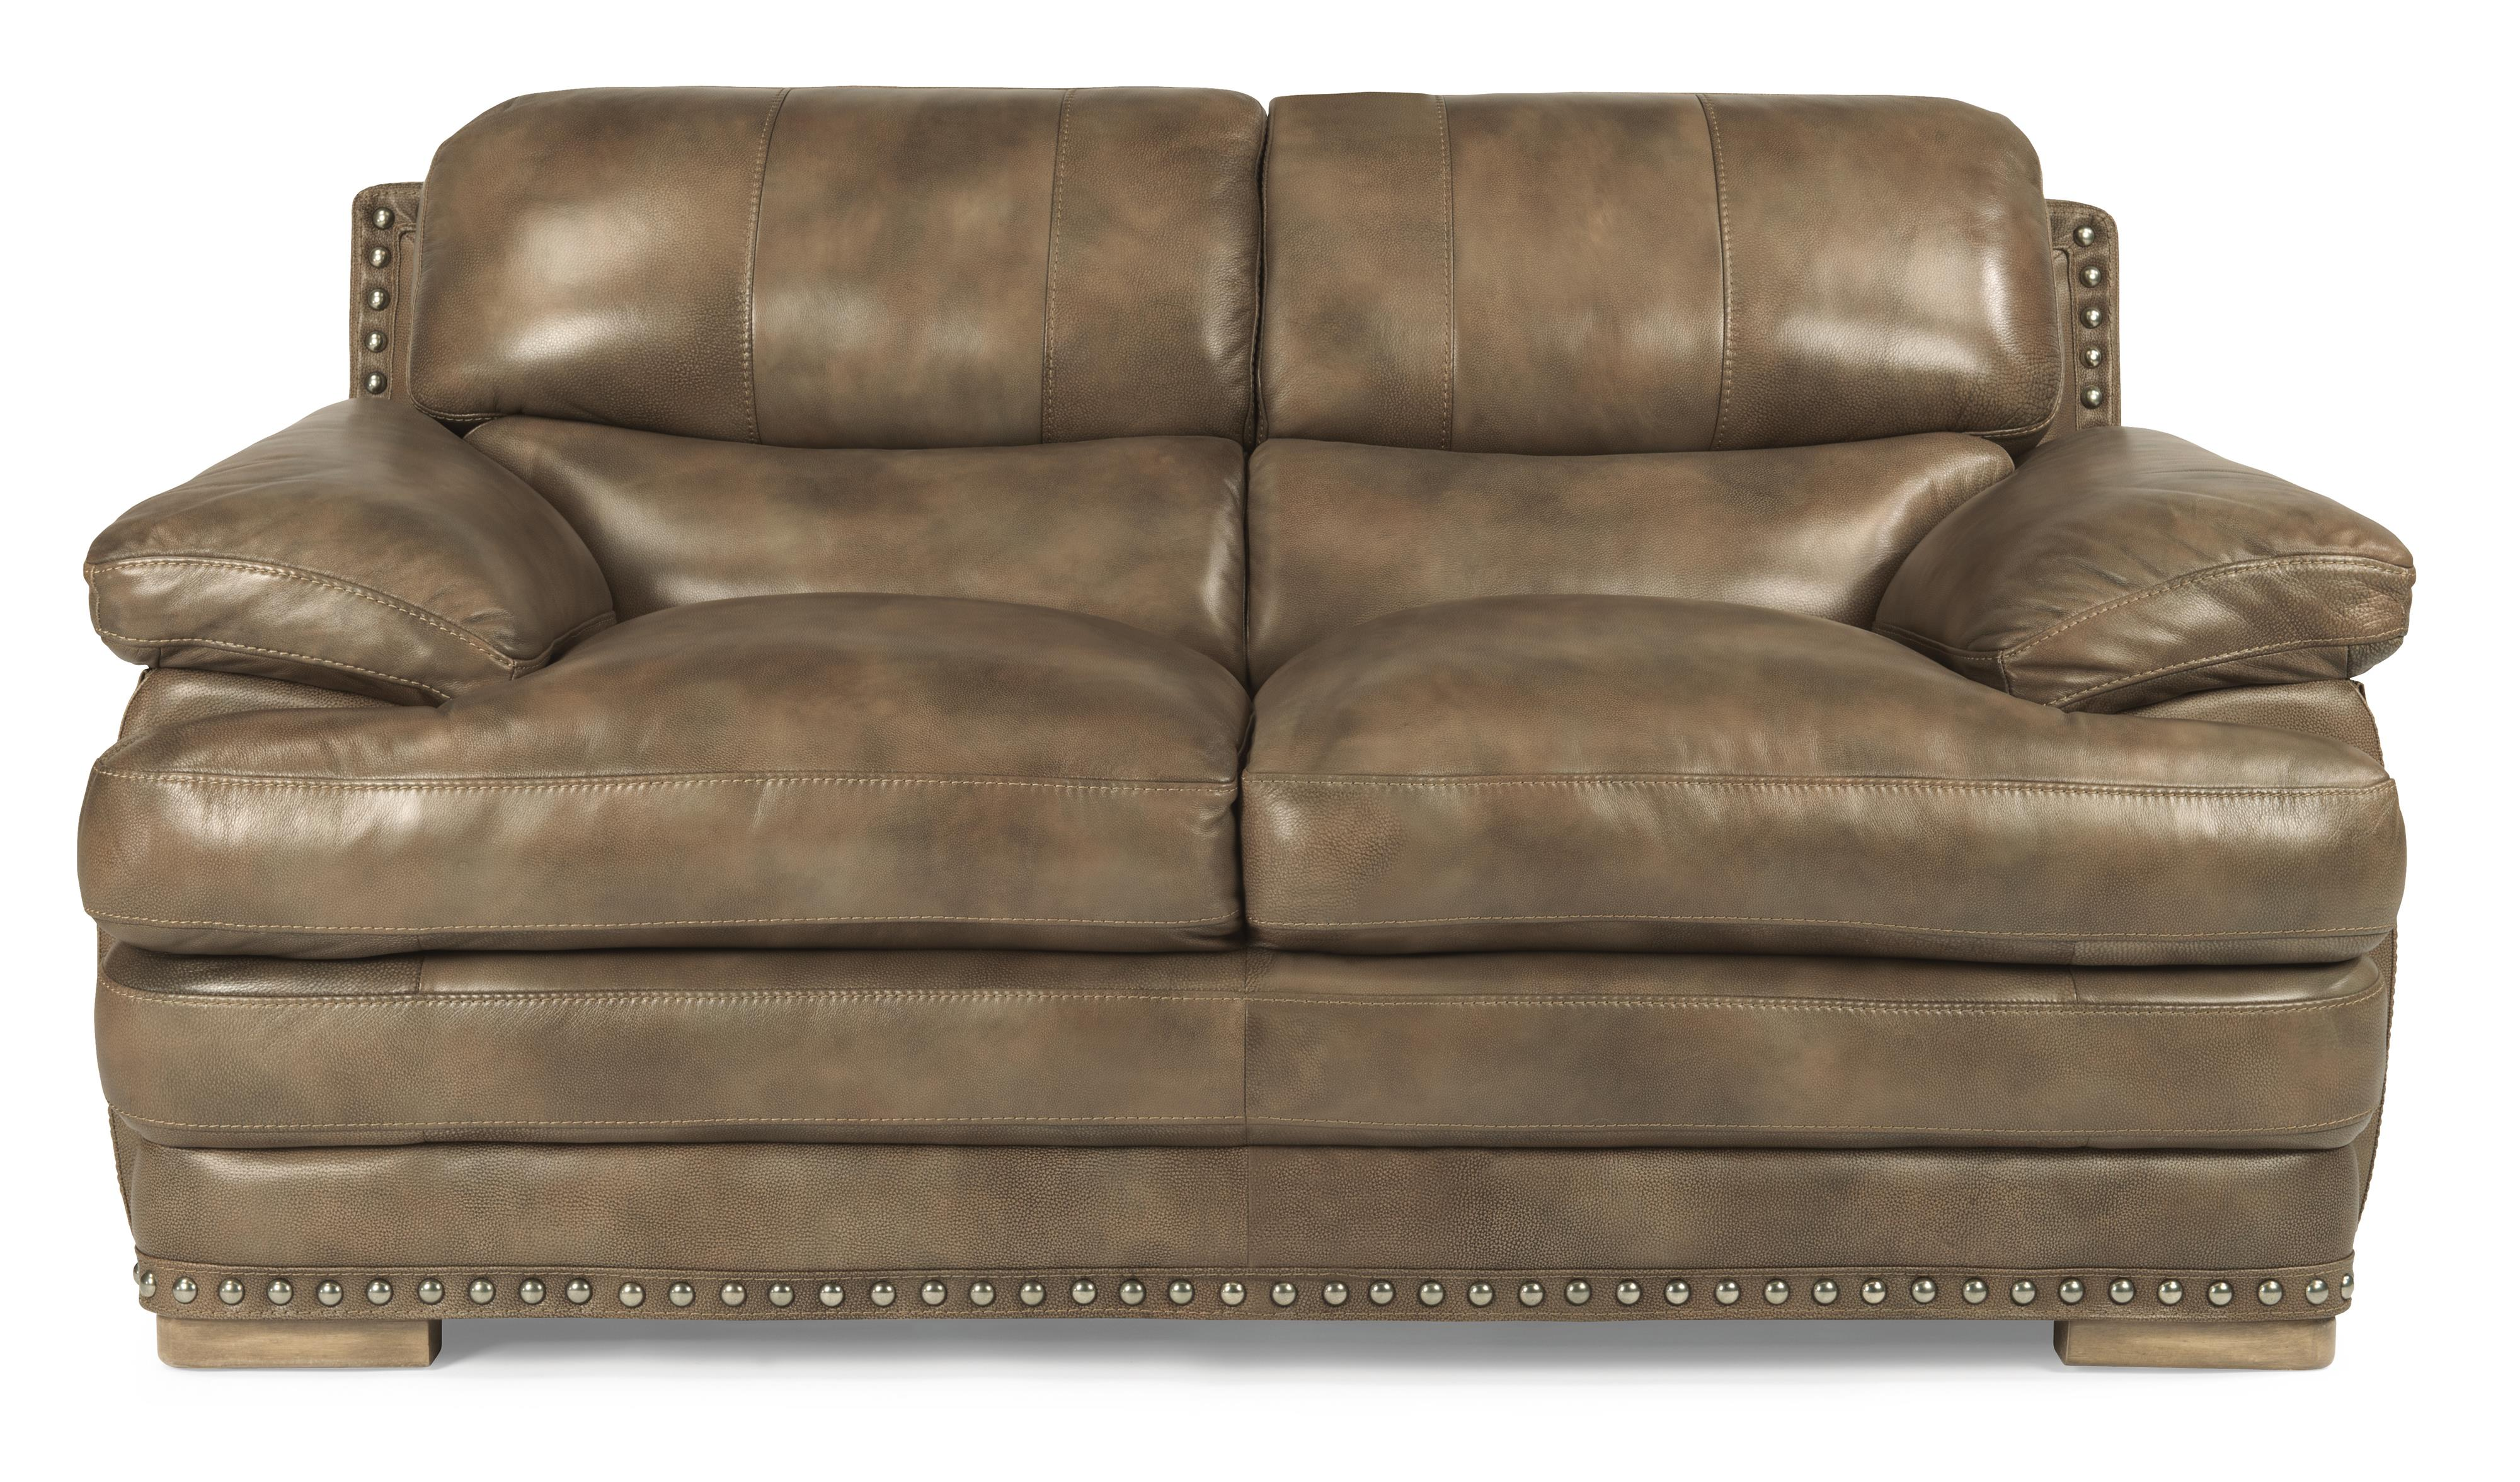 Flexsteel Latitudes - Dylan Leather Love Seat w/ Nailheads - Item Number: 1627-20-908-74